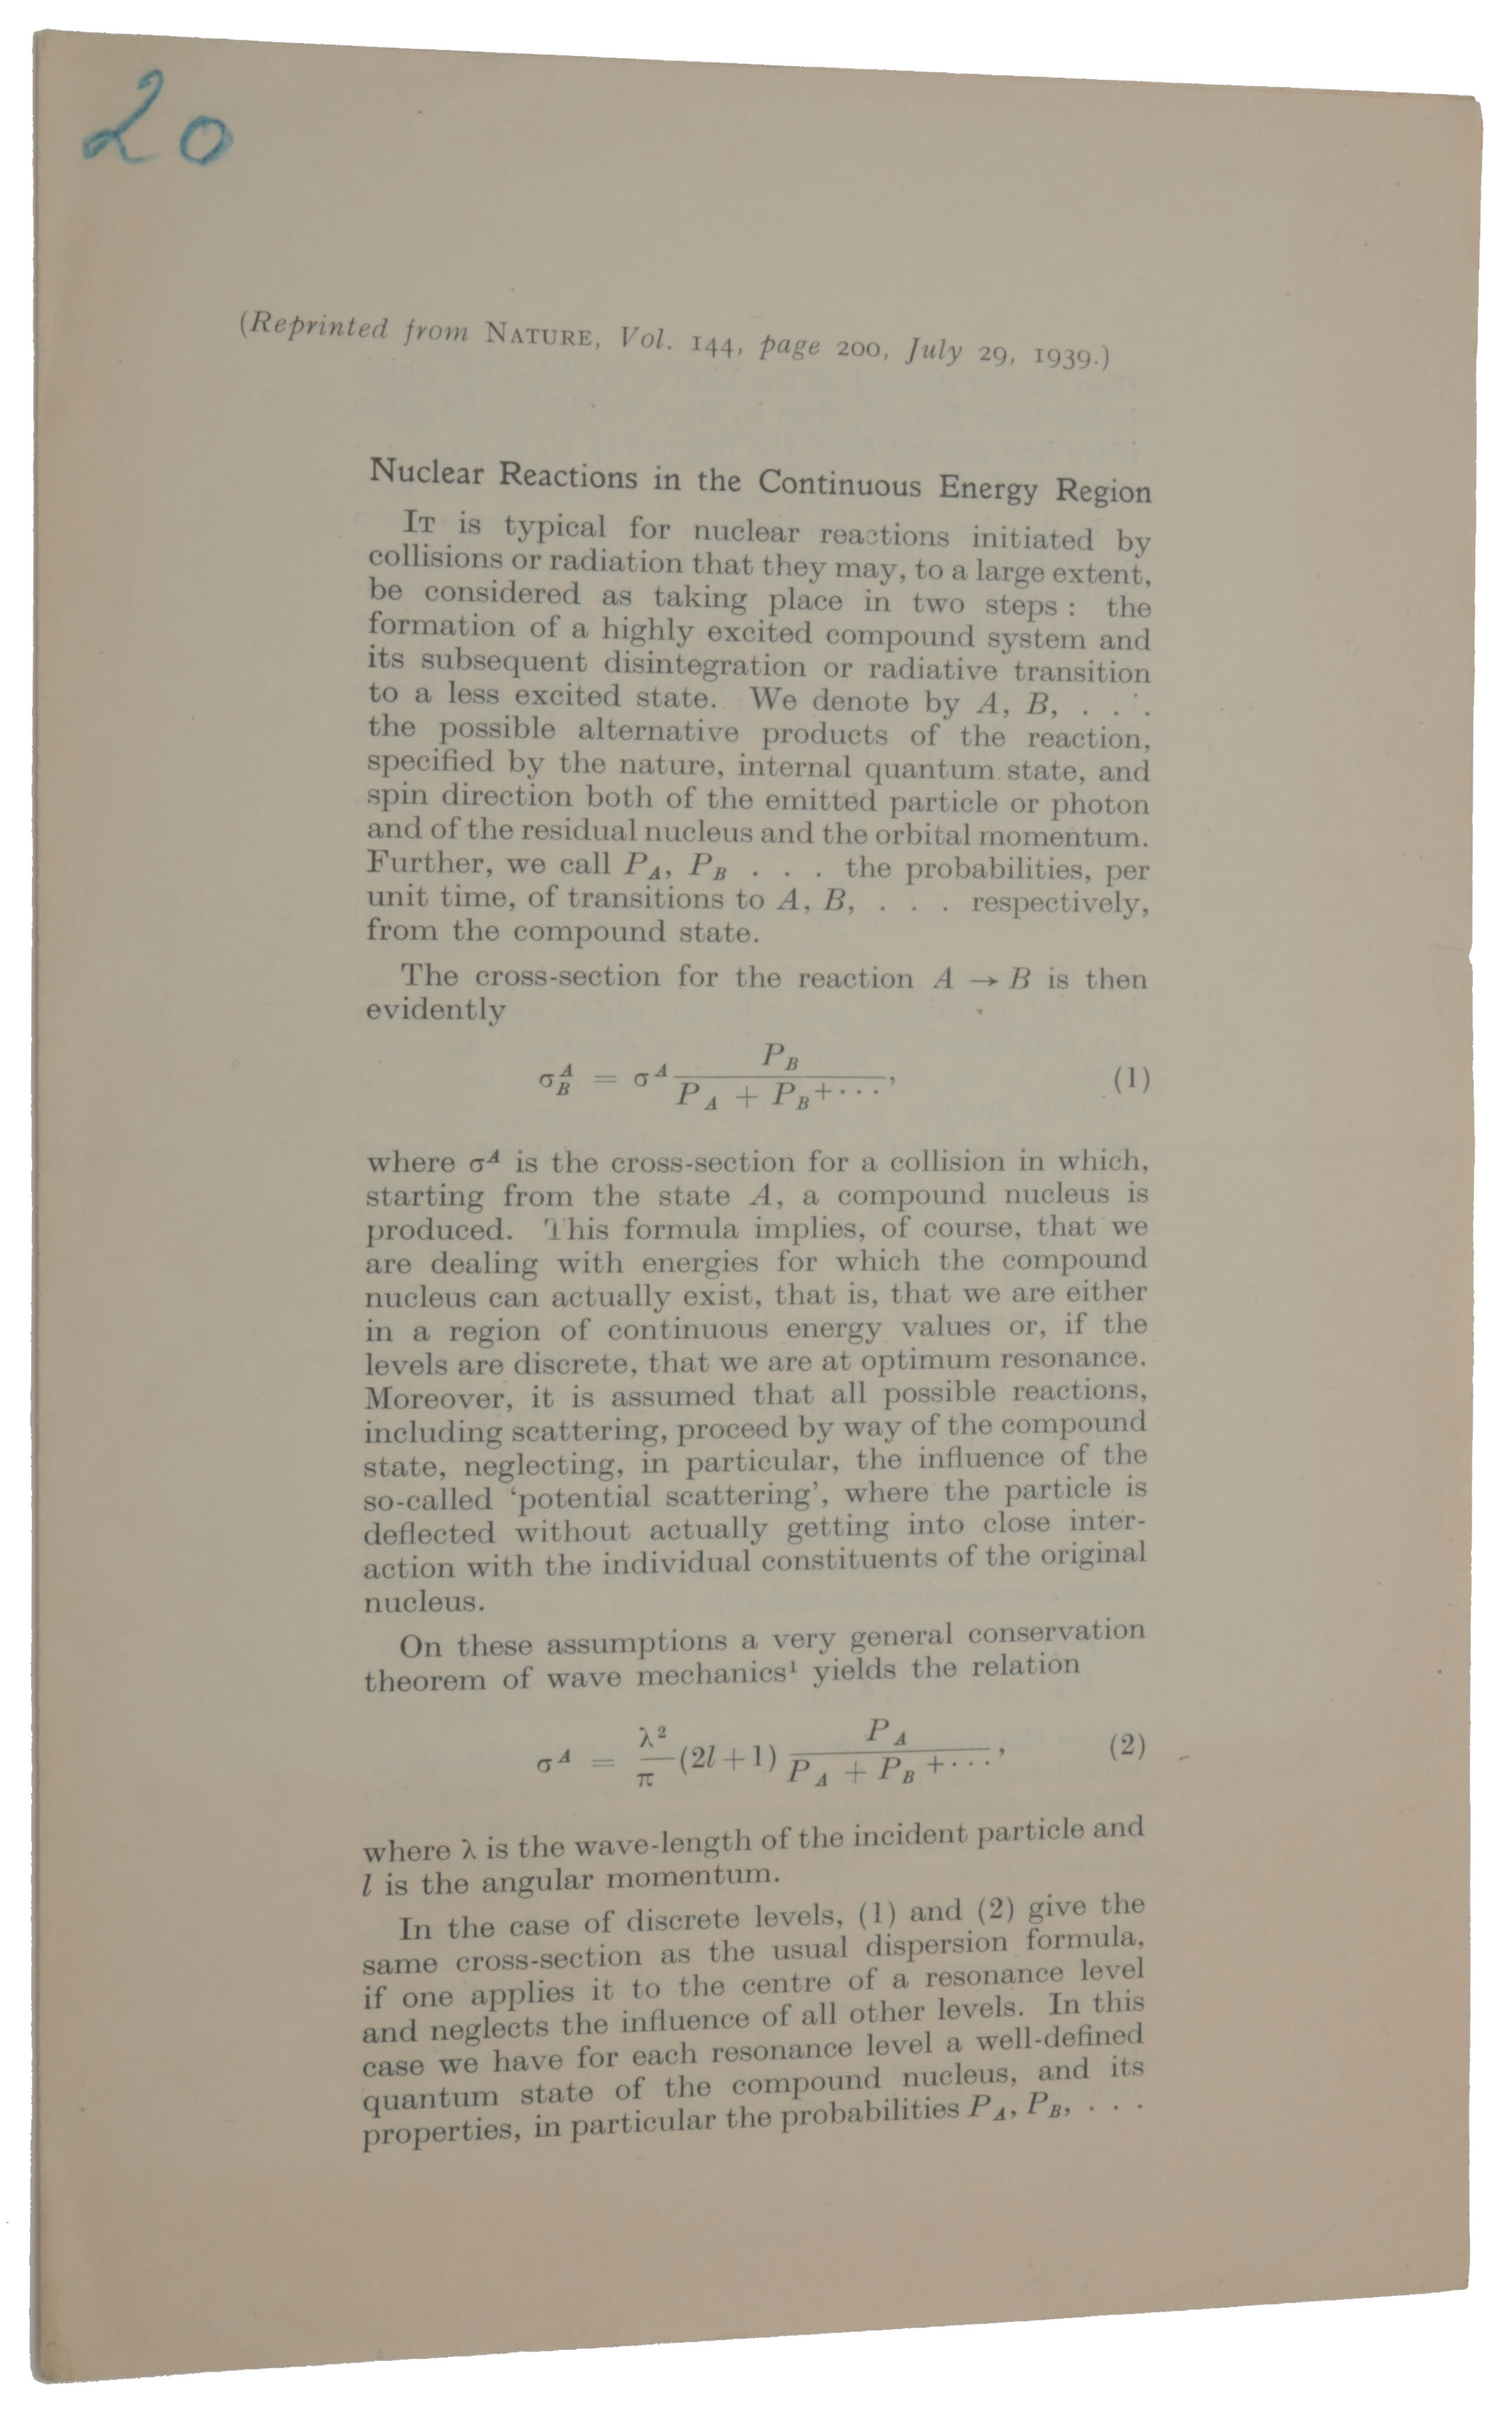 Nuclear reactions in the continuous energy region. Offprint from Nature, Vol. 144, July 29, 1939. Niels BOHR, Rudolf, PEIERLS, George PLACZEK.